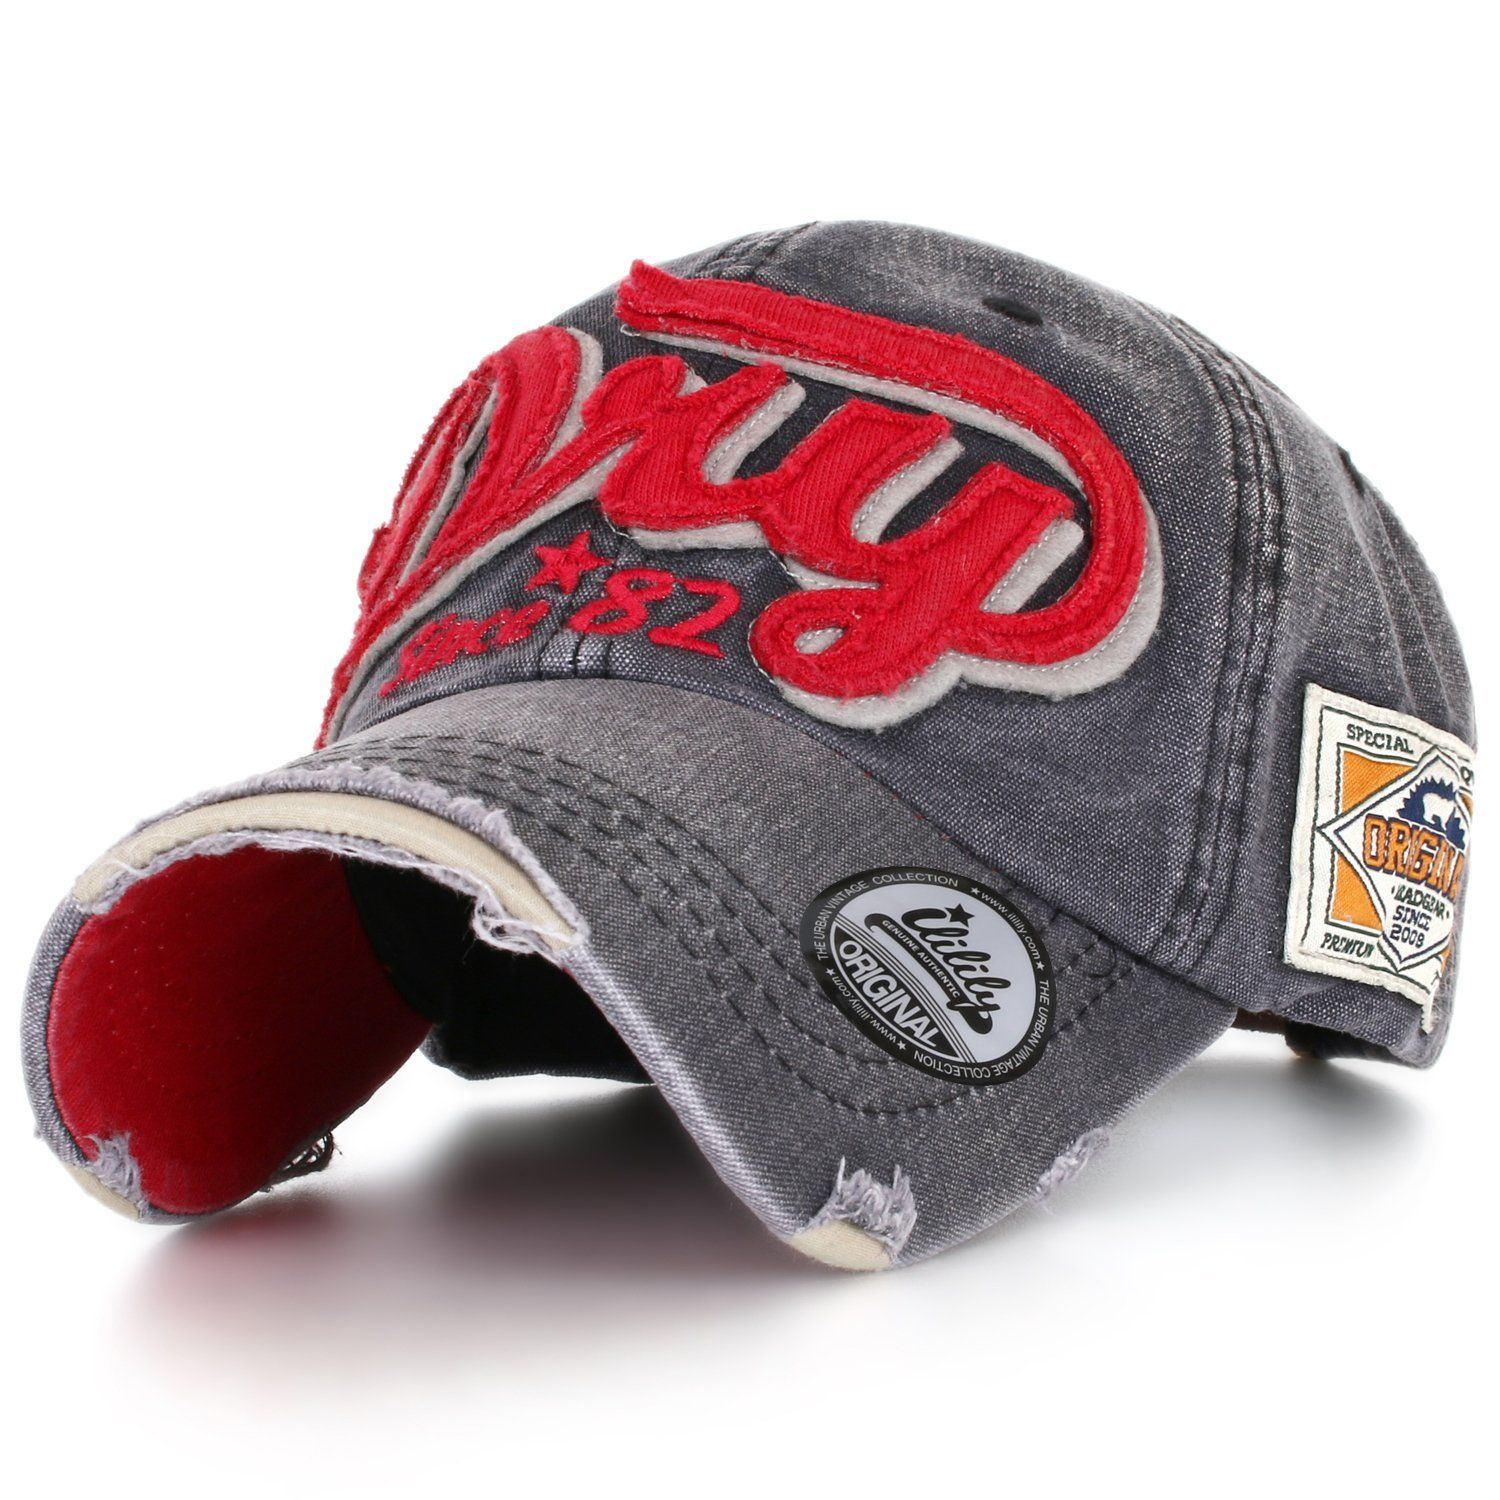 ililily Distressed Vintage Style Denim DRY Baseball Cap Pre-curved Bill and  Embroidery on Front and Side with Adjustable Leather Strap Snapback Trucker  Hat ... d98a7cd832c